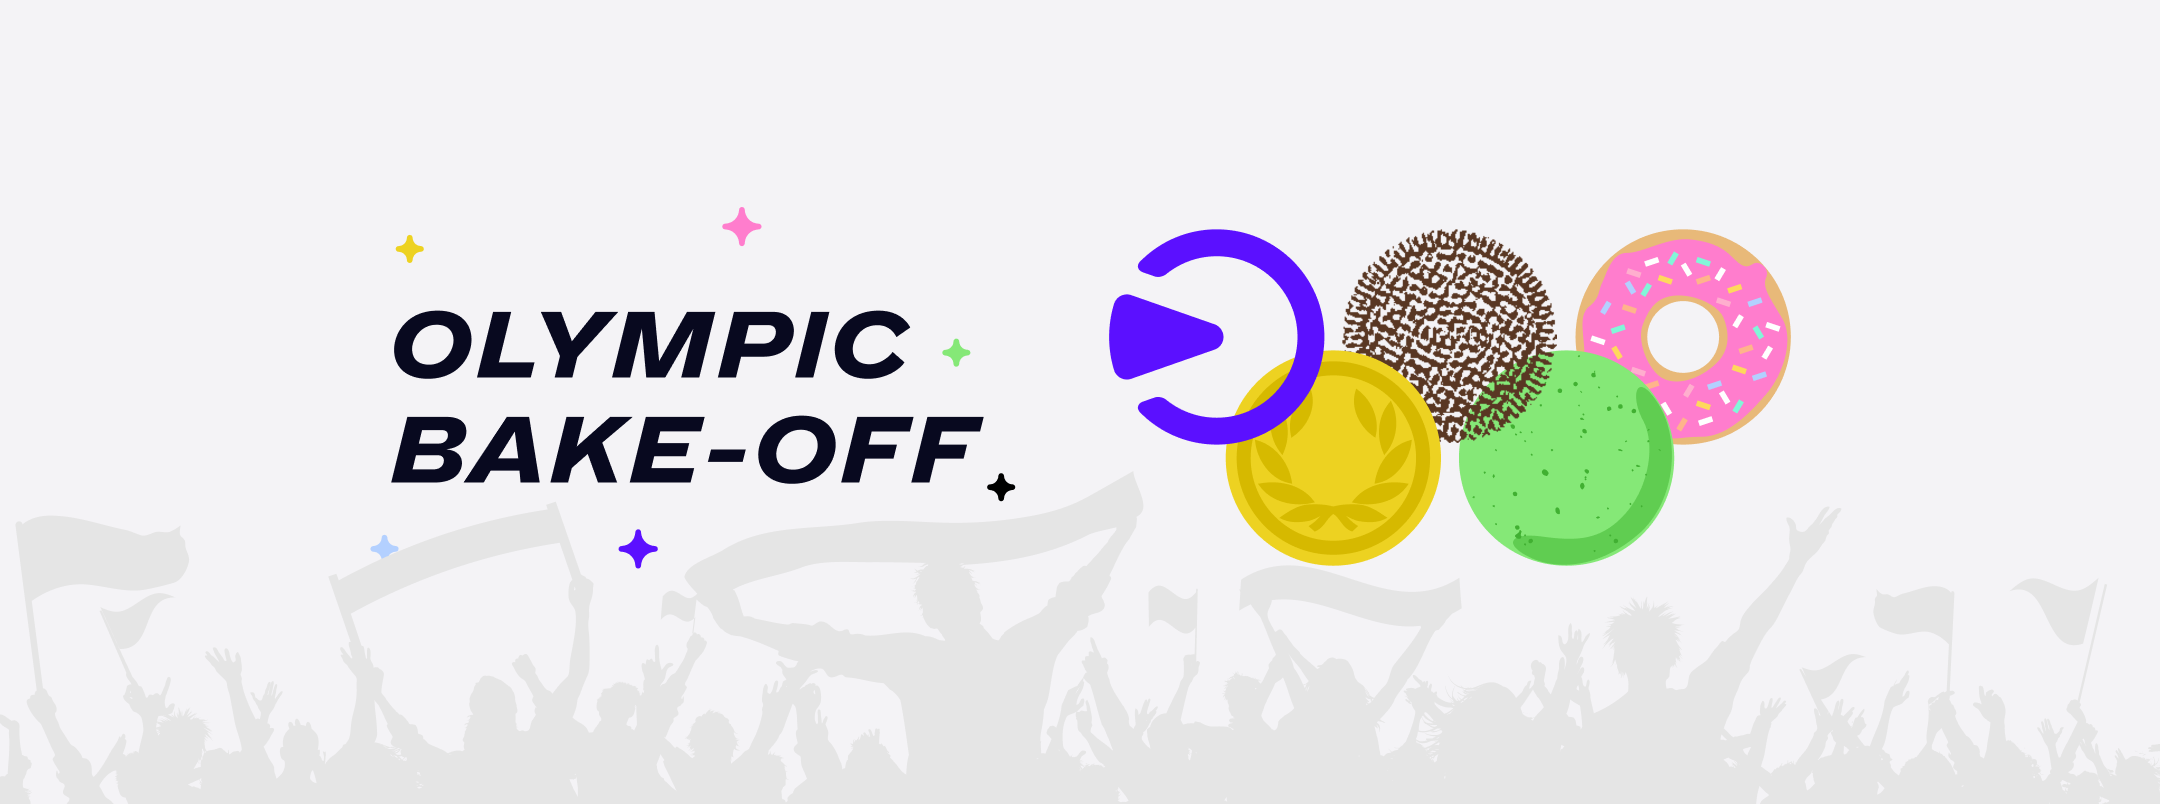 Cake DeFi goes for Gold: Win up to $2000 USD with Cake DeFi's Olympic Bake-Off Promotion